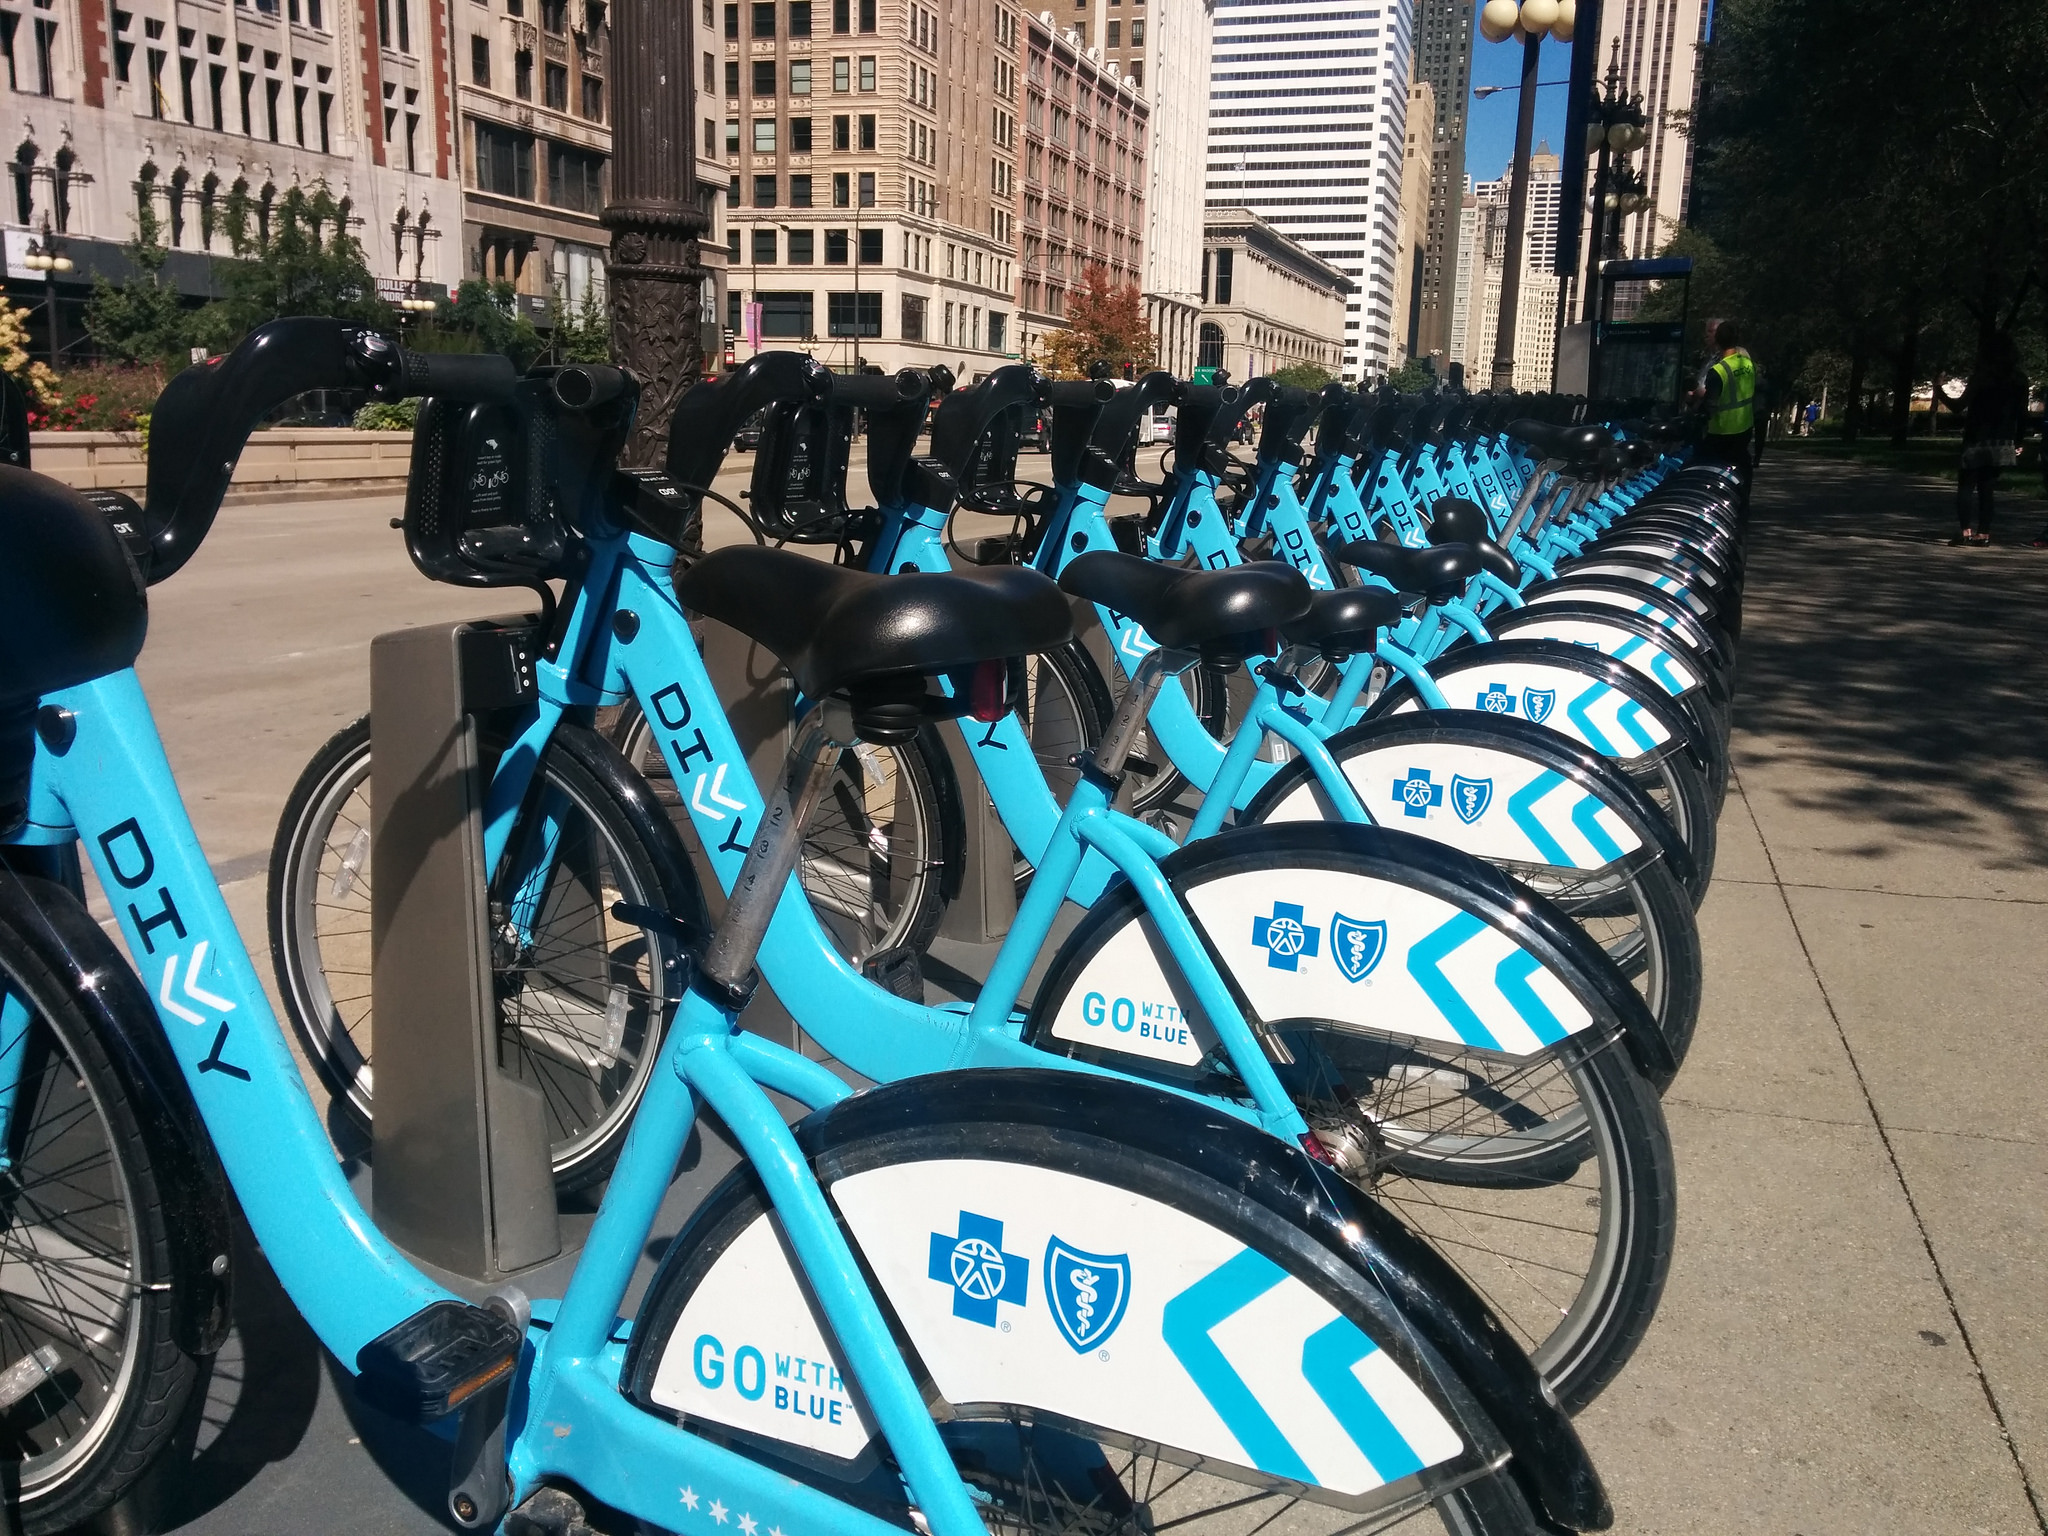 A rack of Divvy bikes in downtown Chicago. (Antonio Roberts/Flickr)